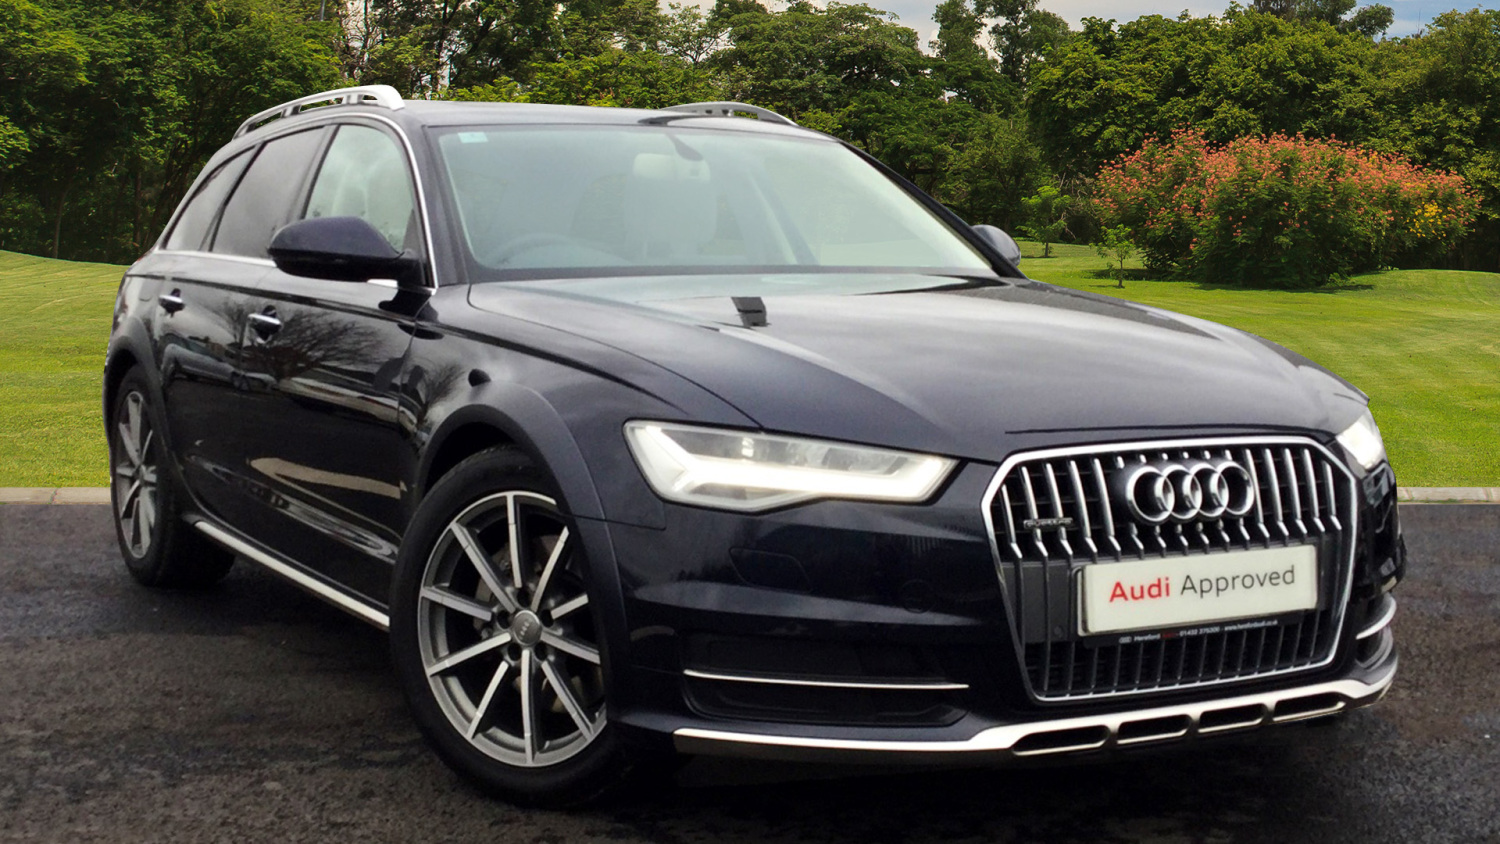 used audi a6 allroad 3 0 tdi 272 quattro sport 5dr s tronic diesel estate for sale bristol. Black Bedroom Furniture Sets. Home Design Ideas